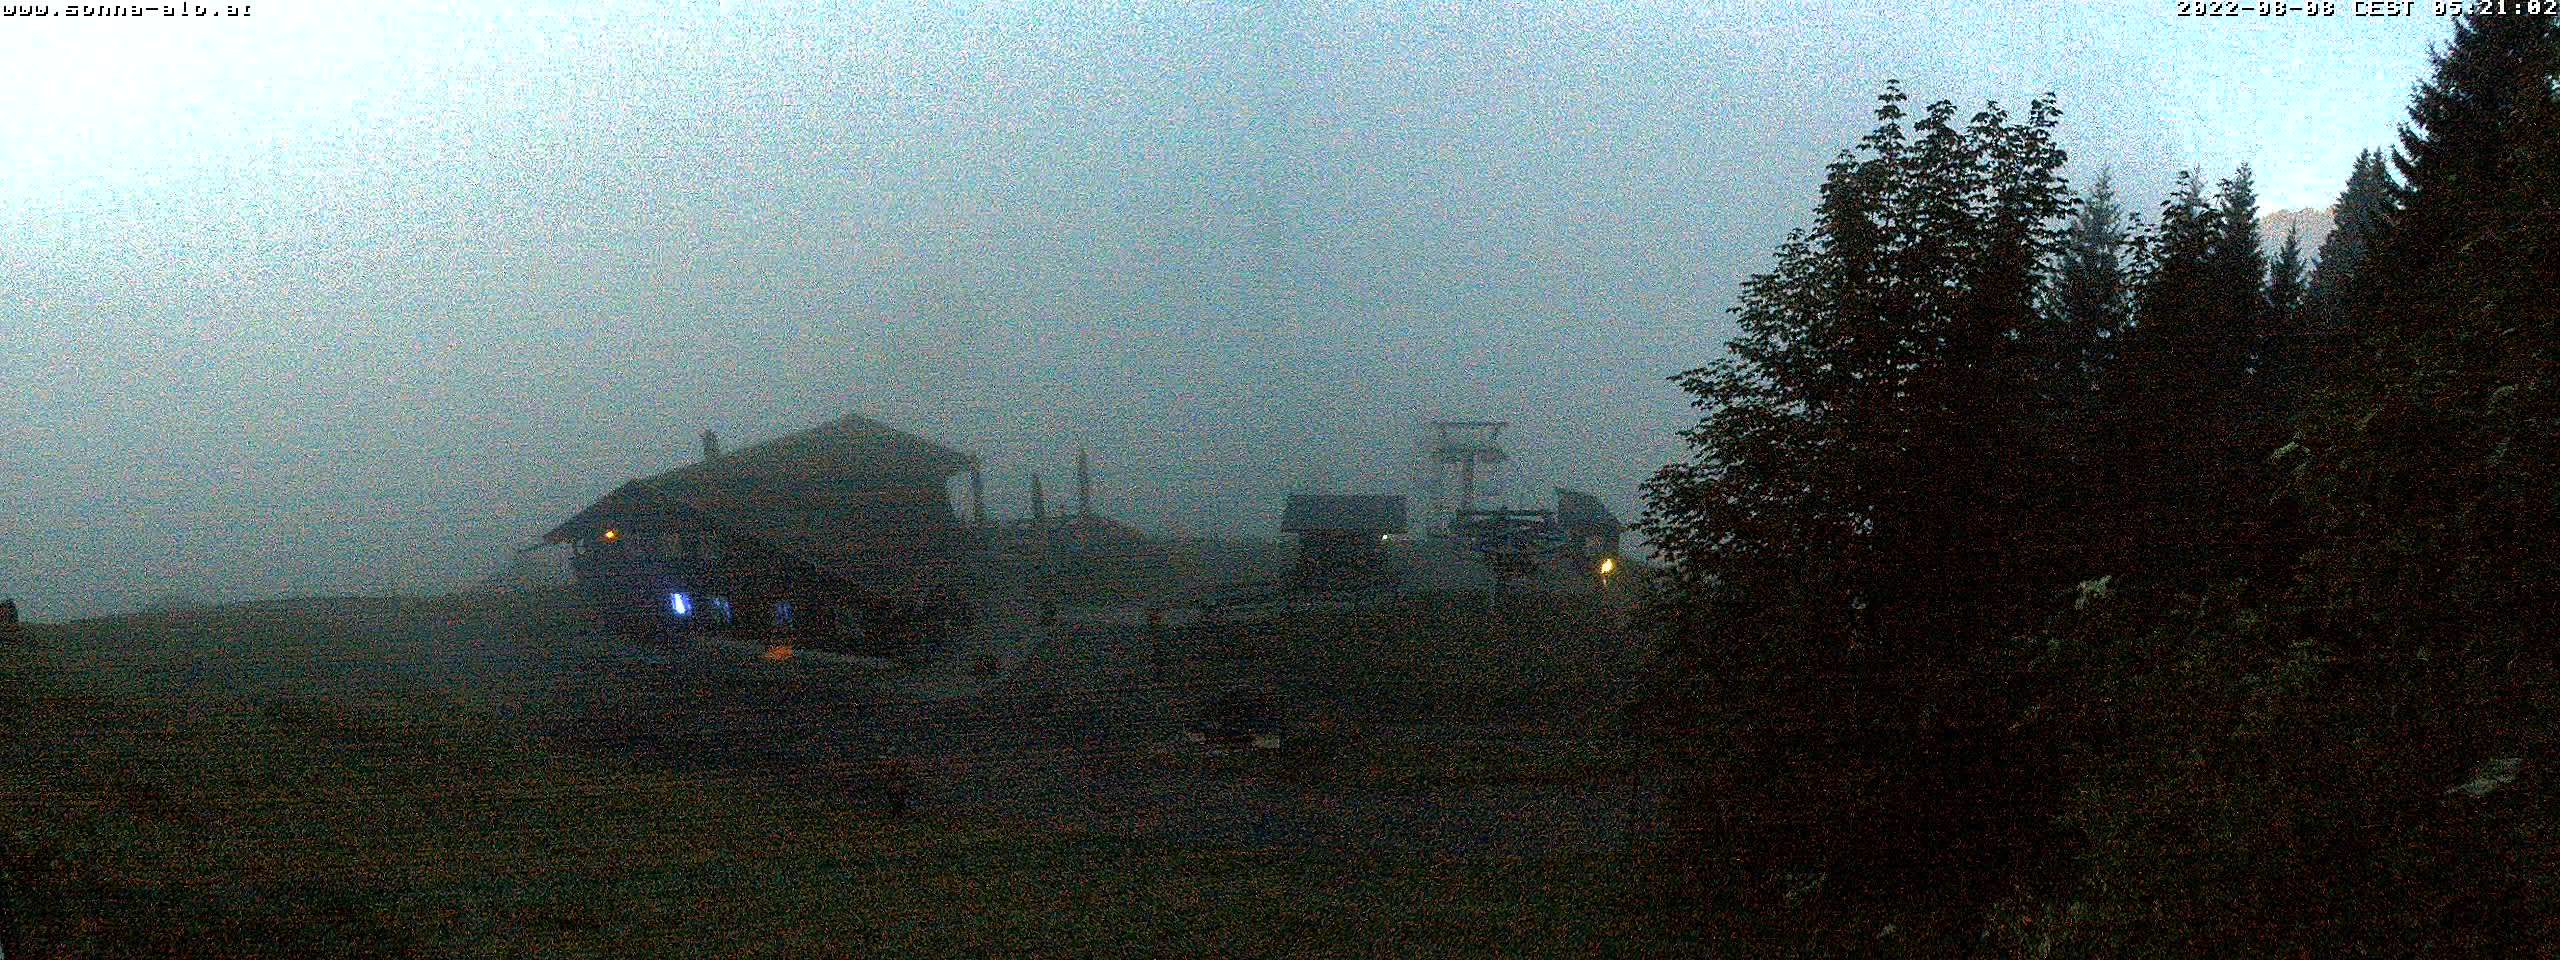 Webcam Zafernalift Bergstation